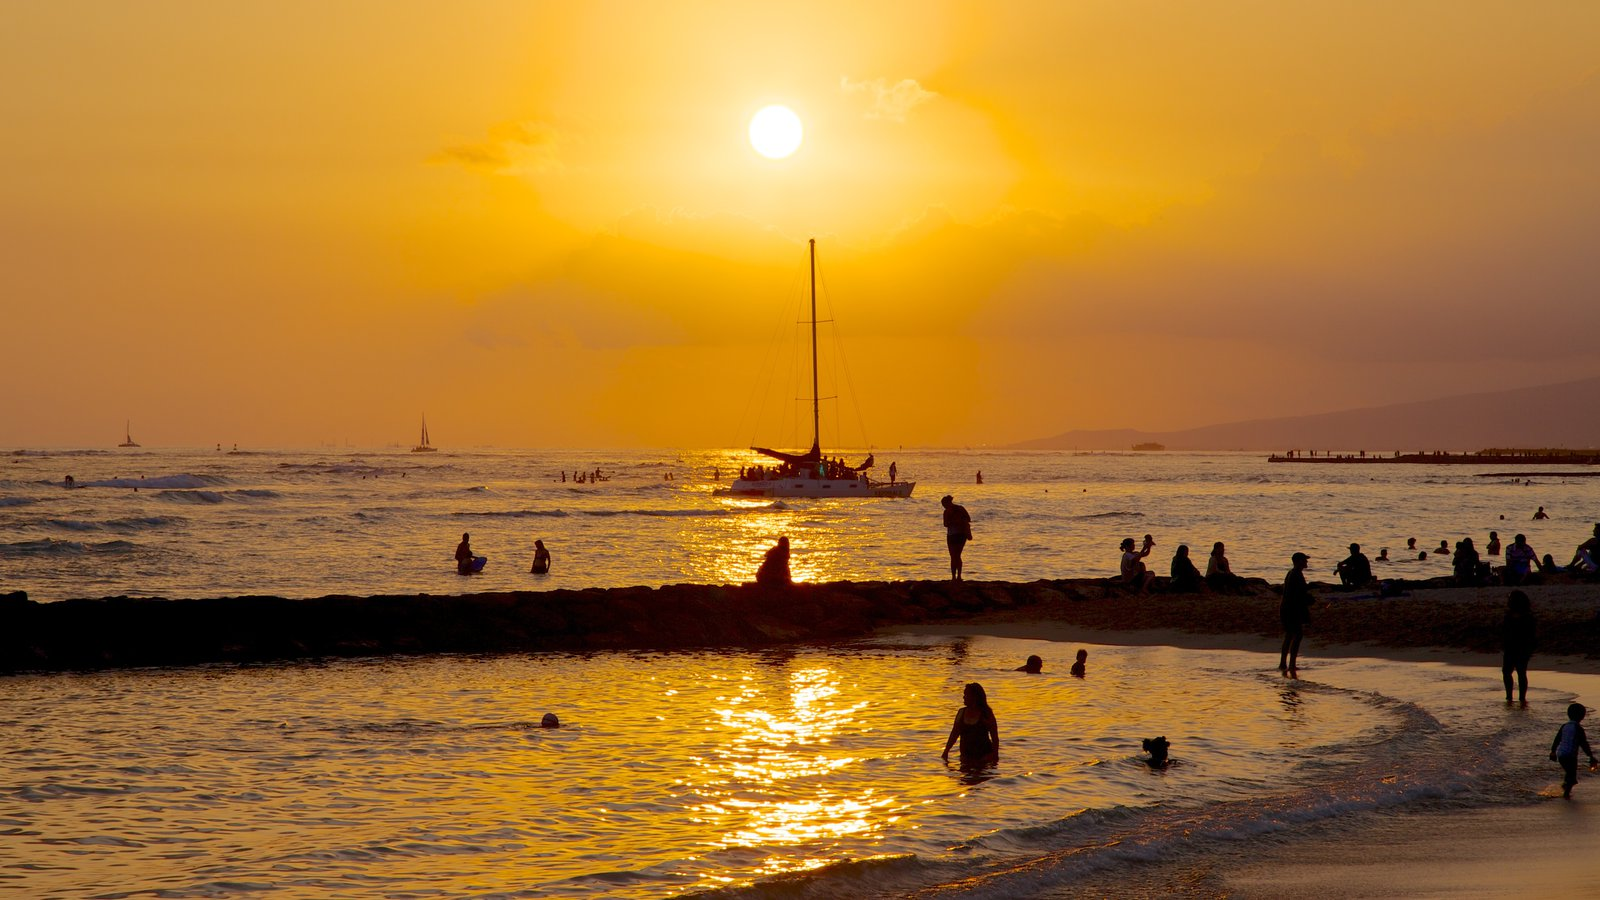 Waikiki Beach which includes a sunset, swimming and landscape views